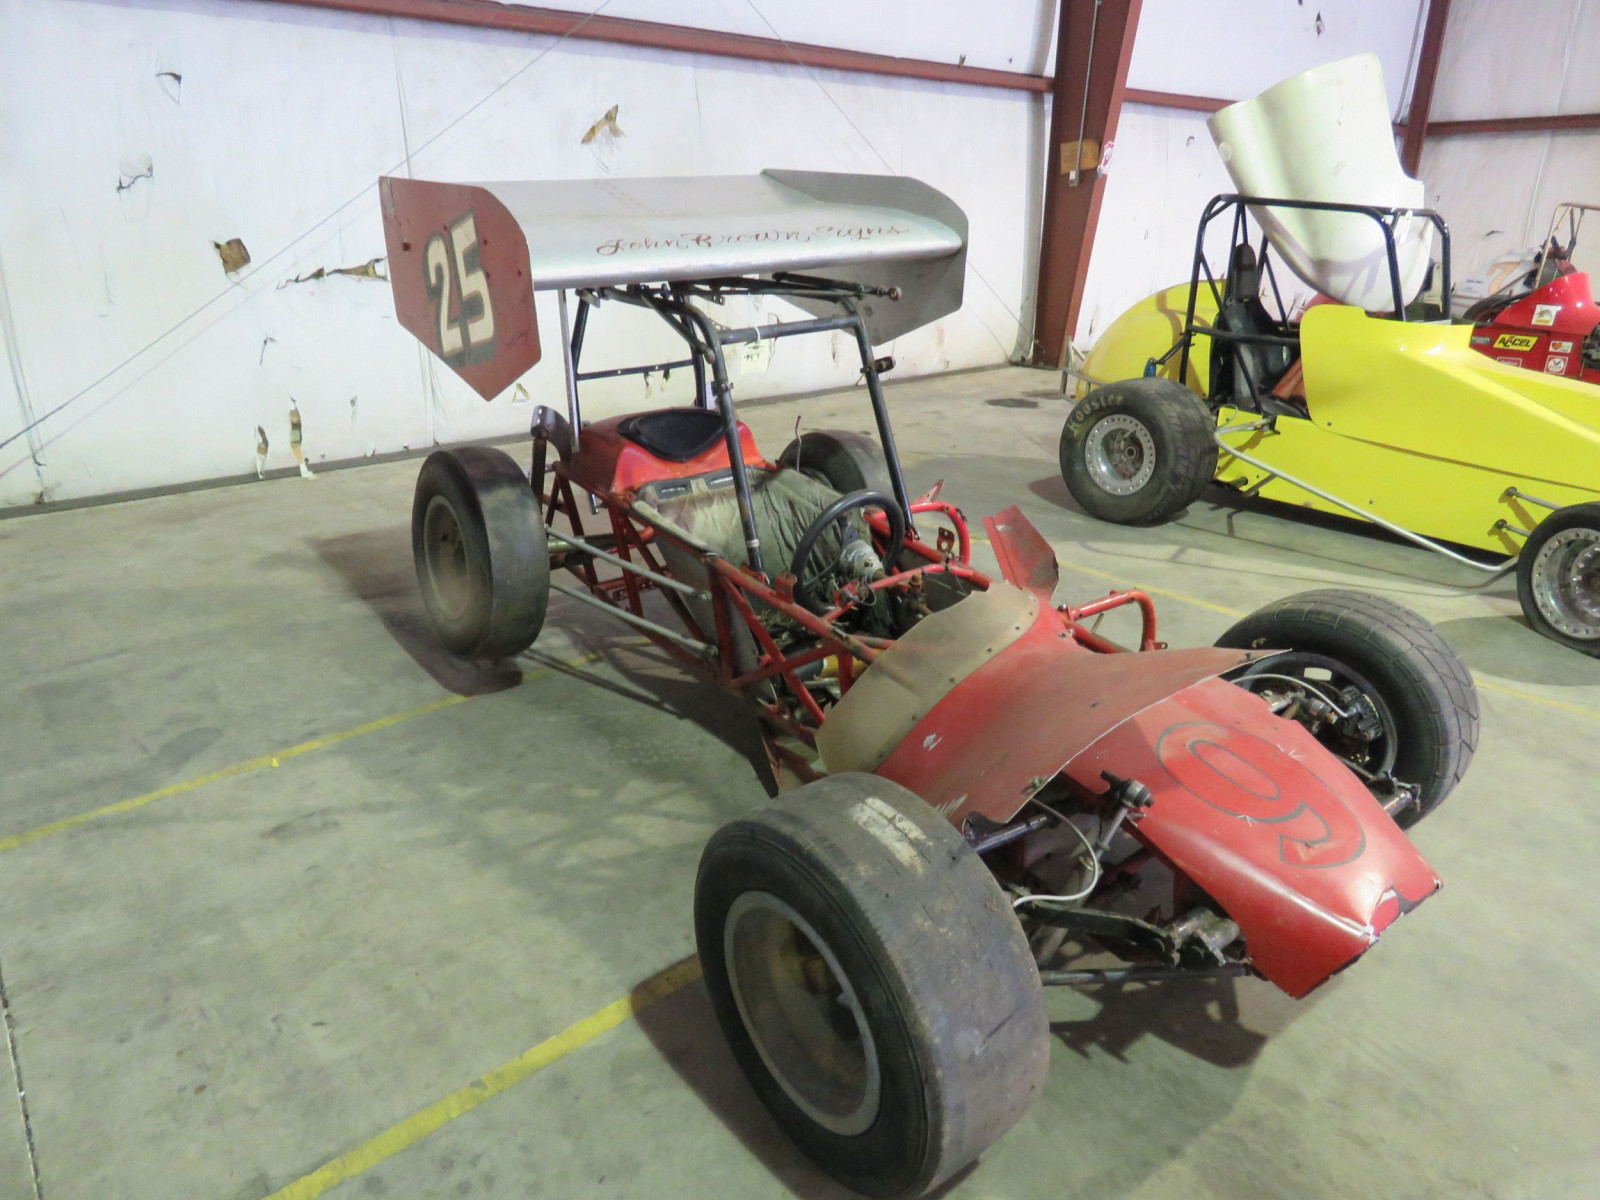 Vintage Edmunds Type Roadster Midget Race Car - Image 3